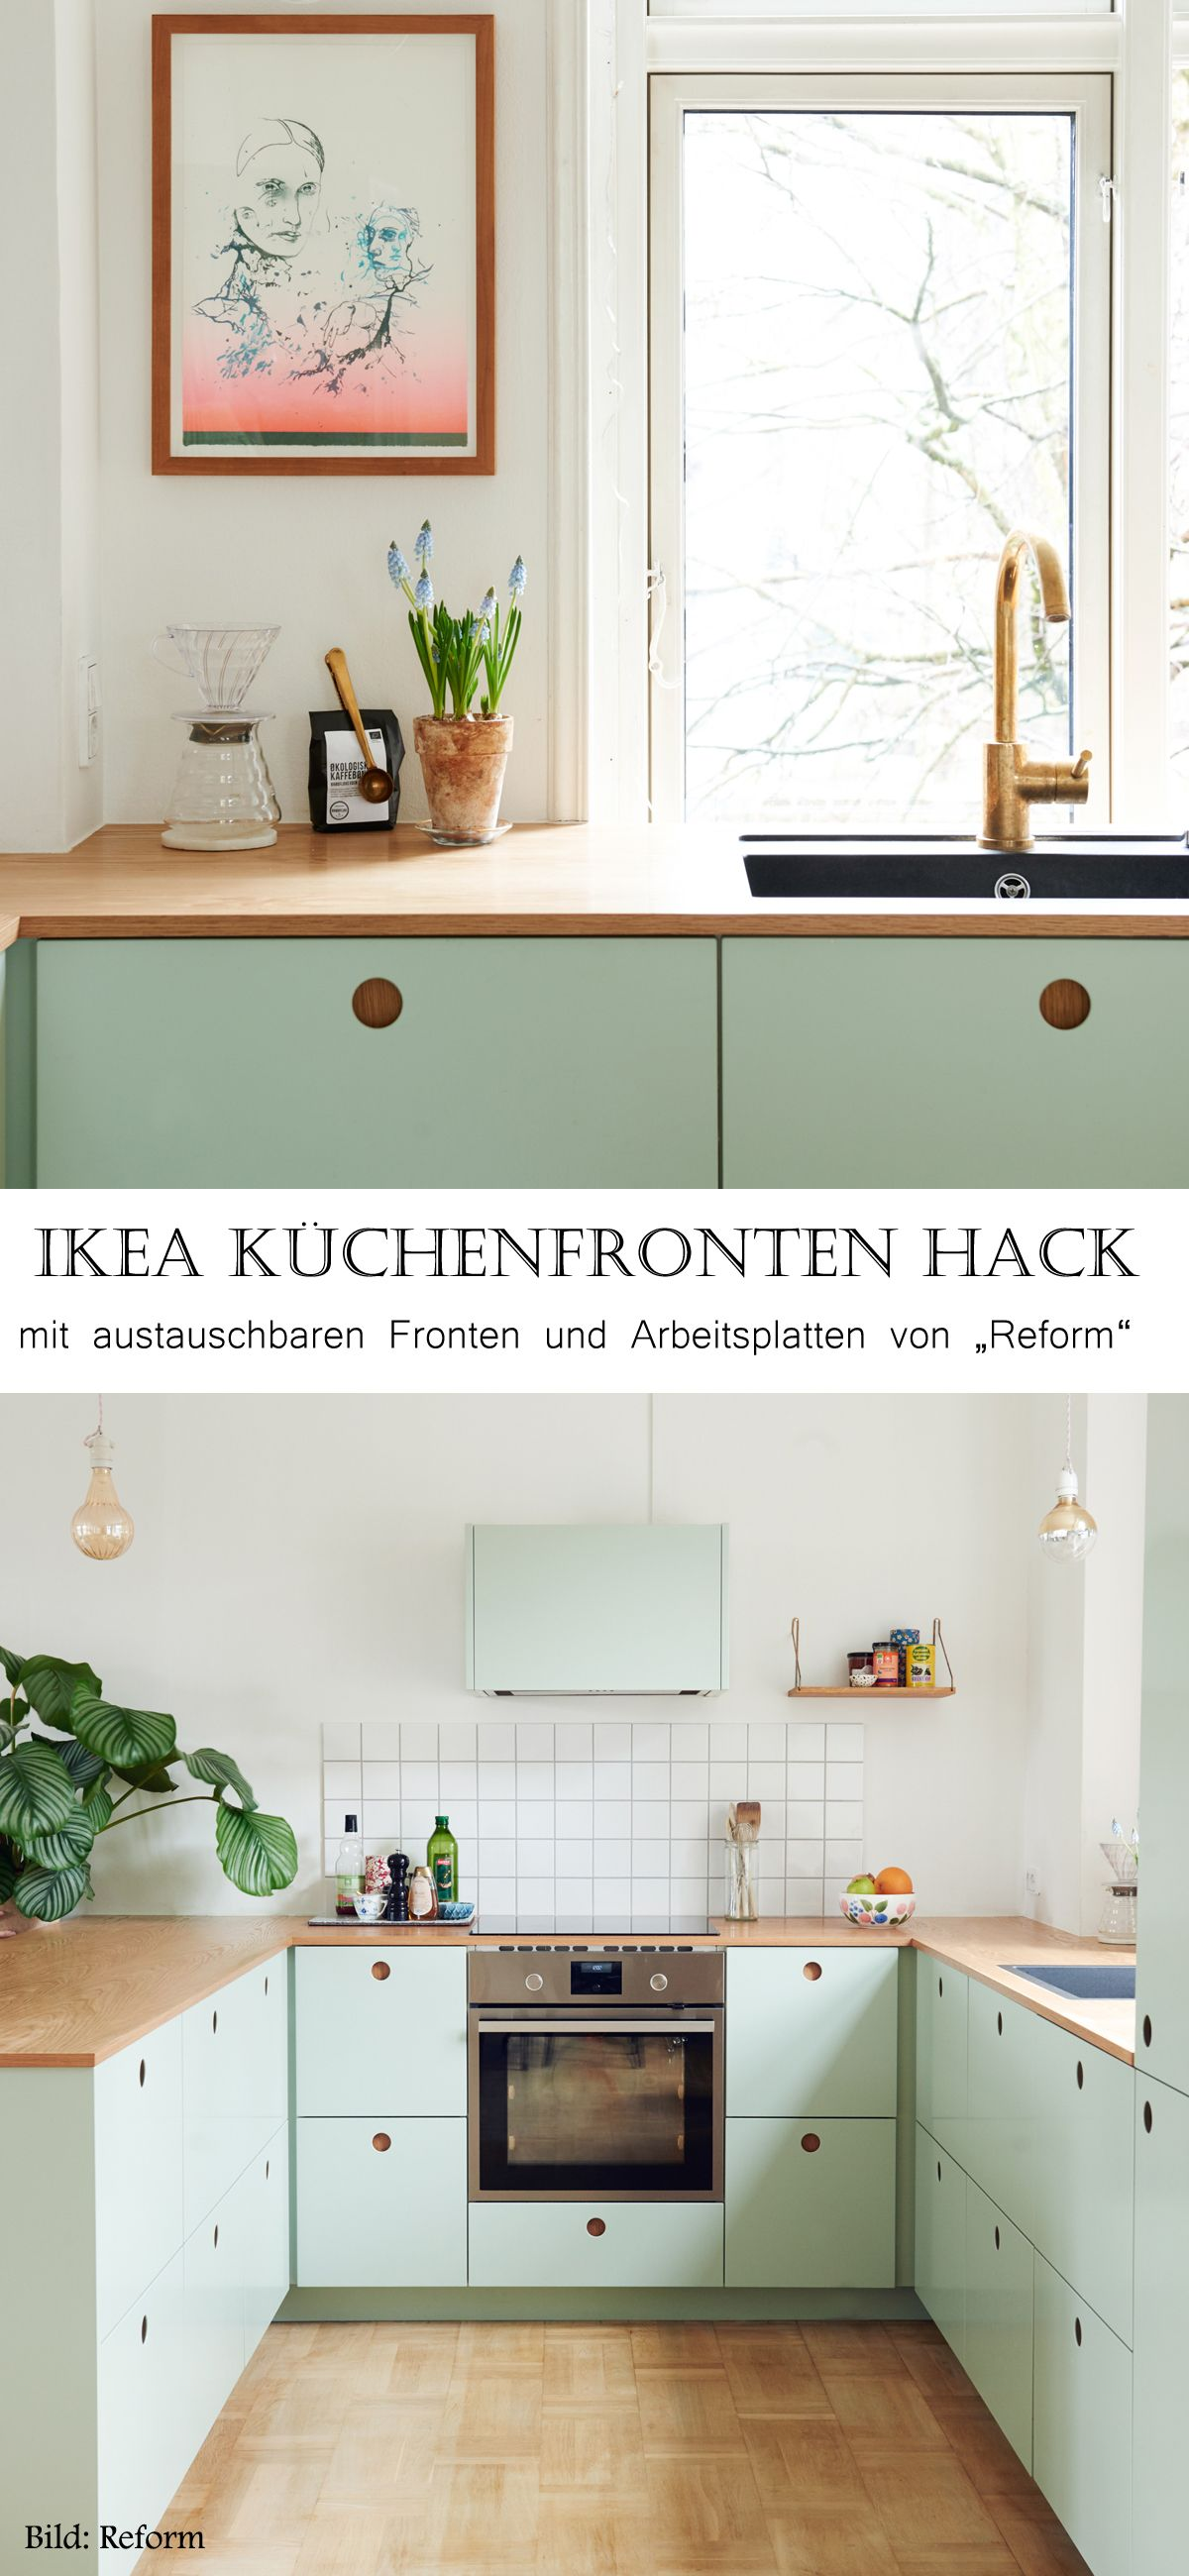 Küche Ikea Reform Ikea Küchenfronten Pimpen Interior Design Kitchen